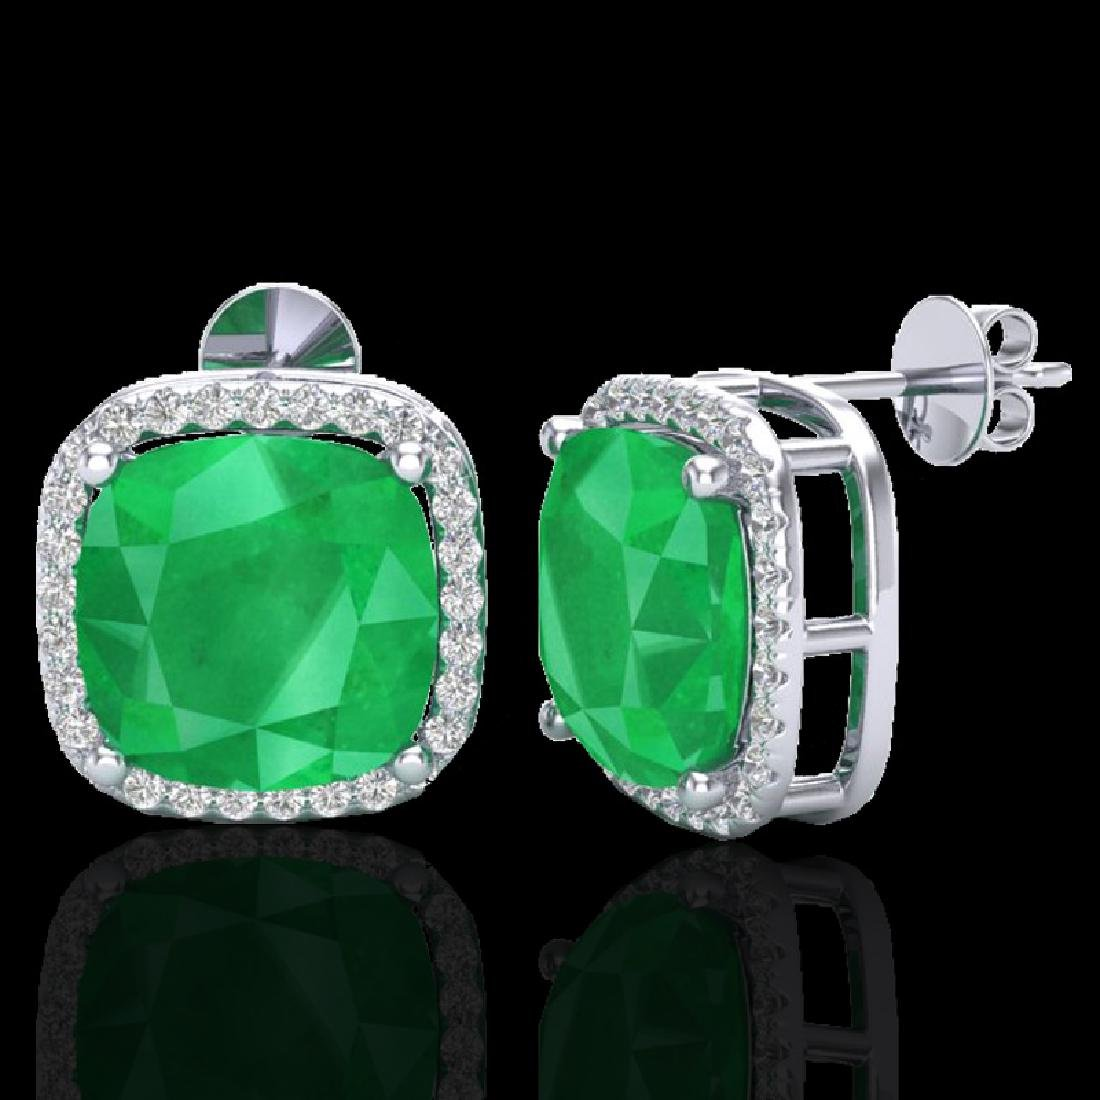 12 CTW Emerald & Micro Pave Halo VS/SI Diamond Earrings - 2